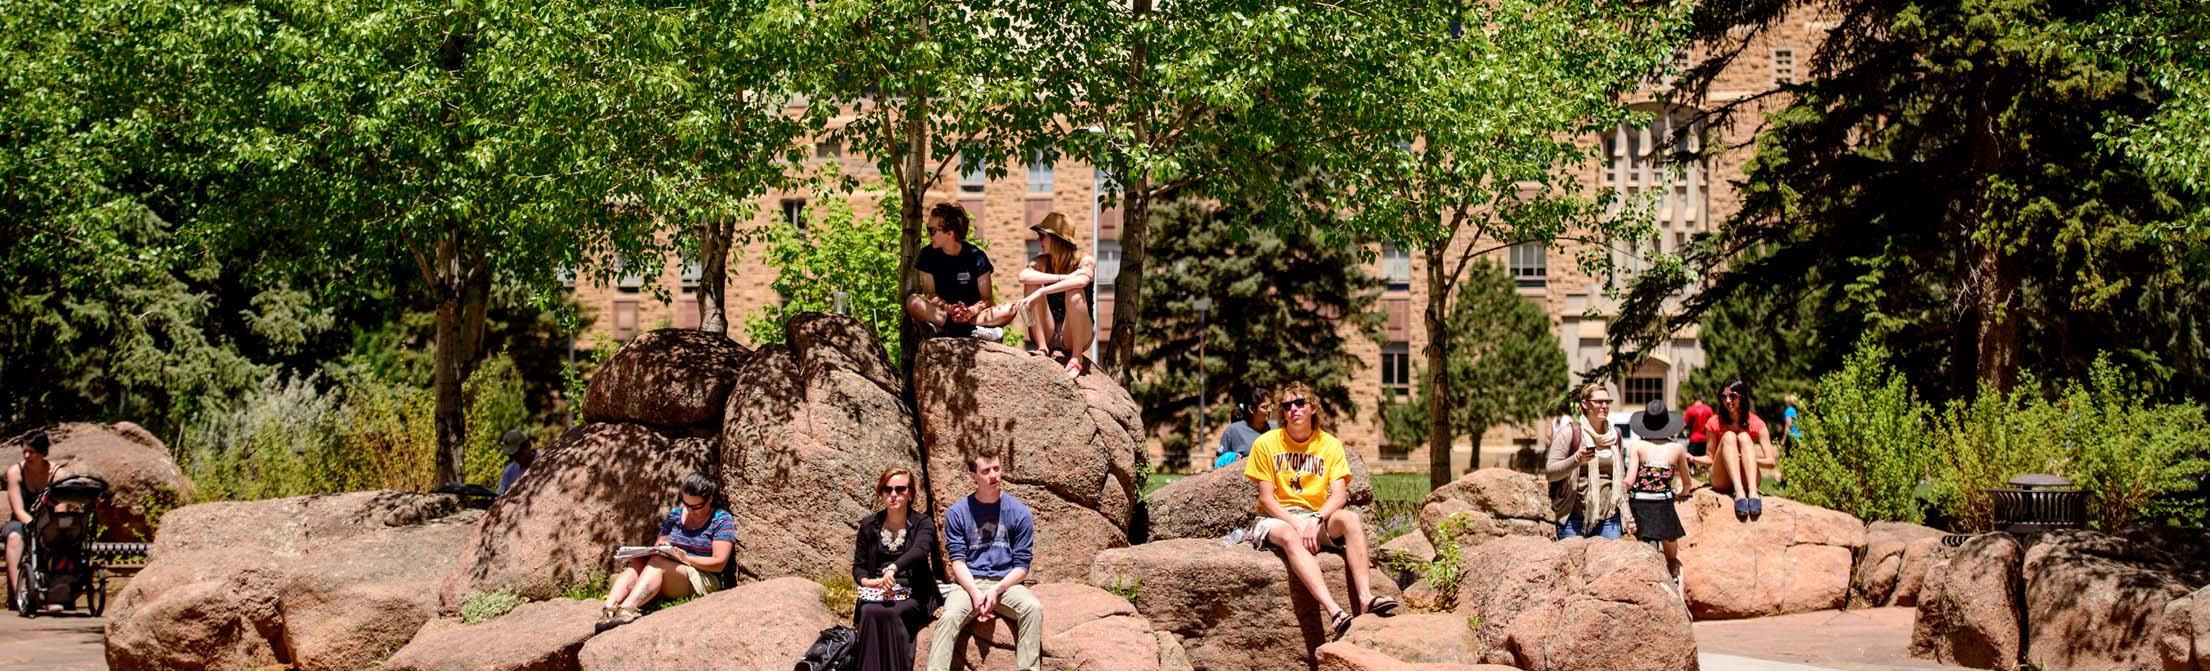 Students sitting on rocks in Prexy's Pasture